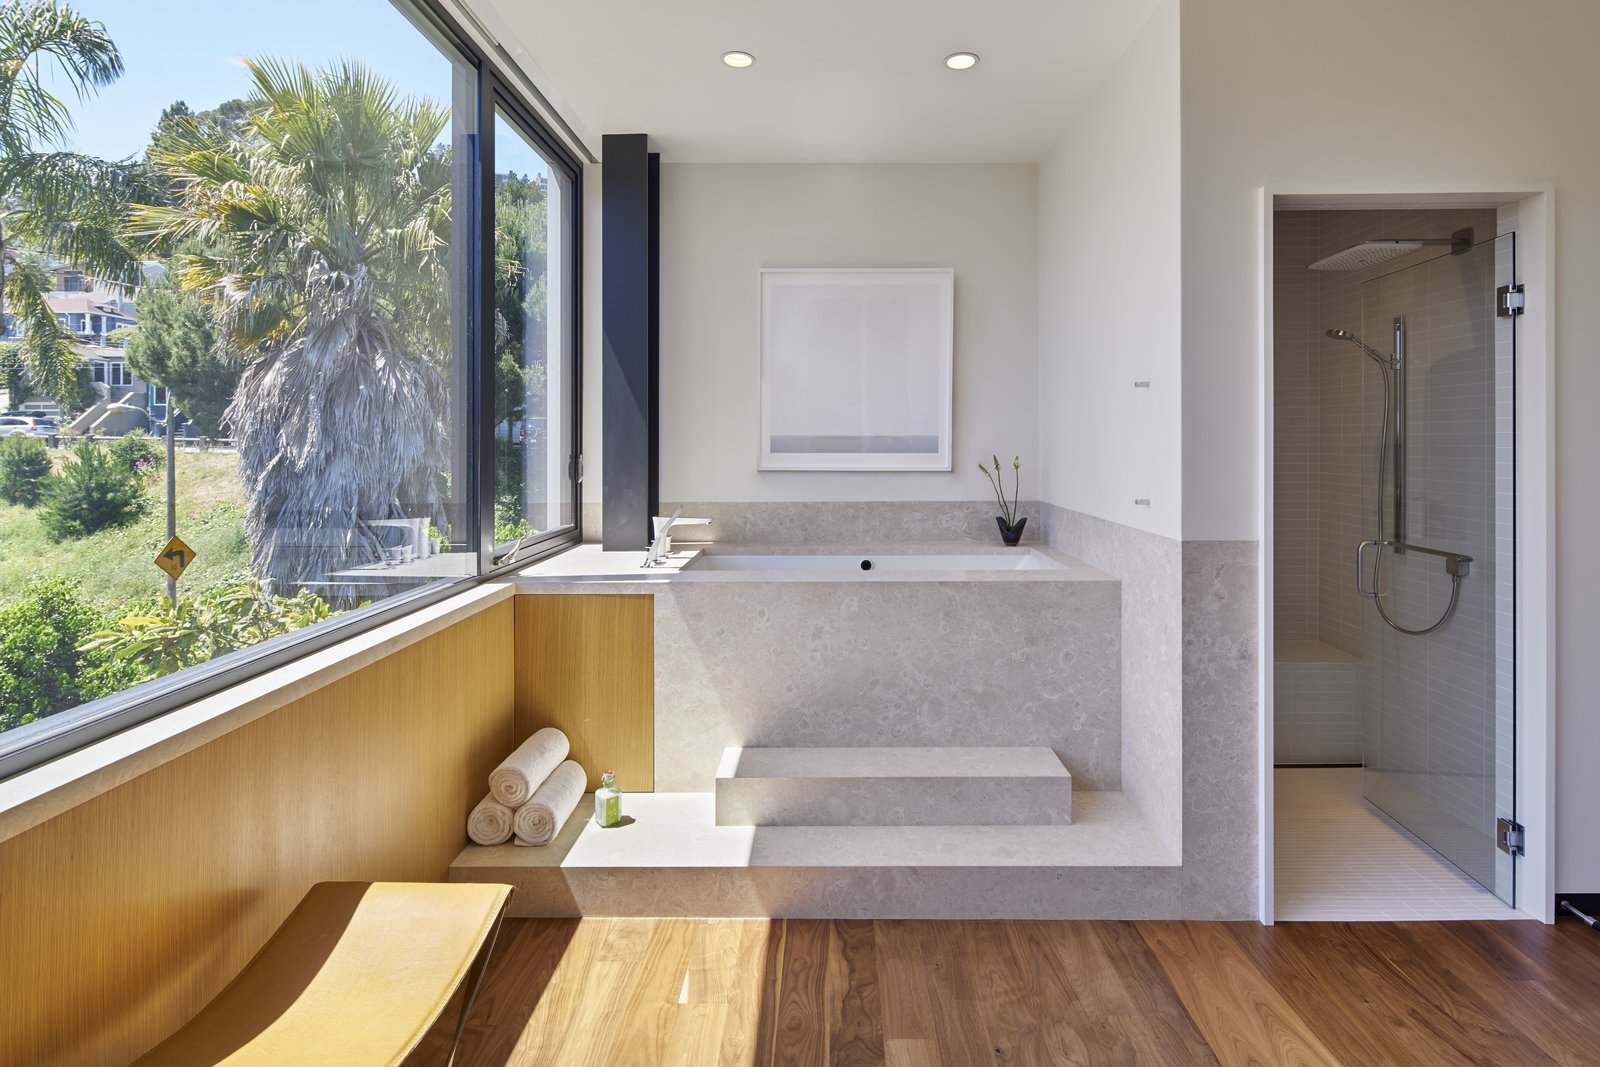 Bath Room, Medium Hardwood Floor, Drop In Tub, Soaking Tub, Enclosed Shower, Corner Shower, Full Shower, and Recessed Lighting  29th Street Residence by Schwartz and Architecture